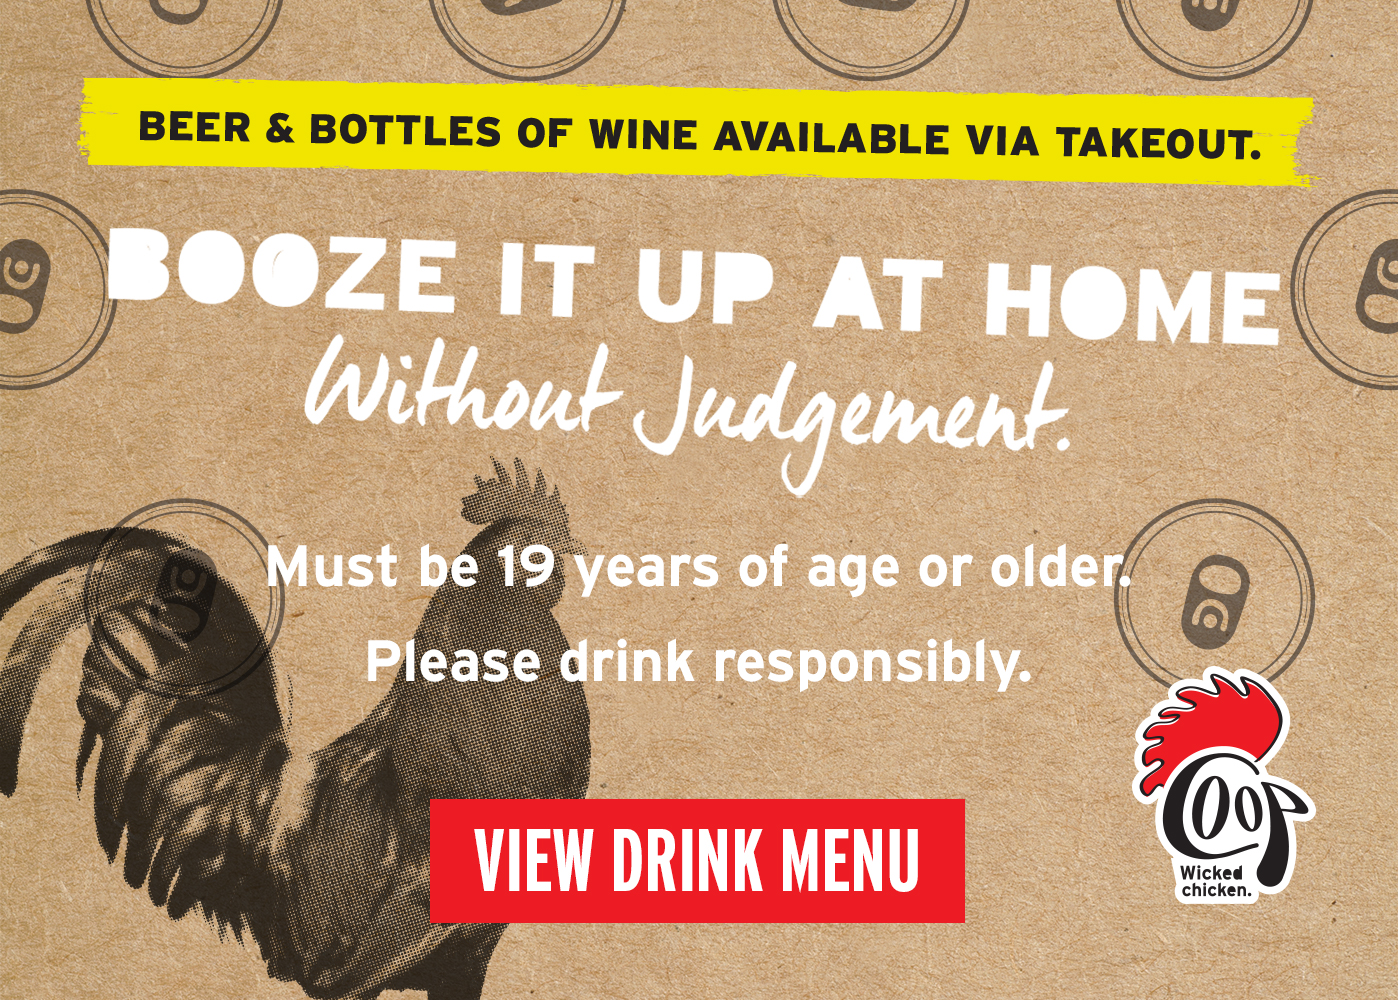 Beer and bottles of wine available via takeout. Boose it up at home without judgement. Must be 19 Years of age or older. Please drink responsibly. View Drink menu.